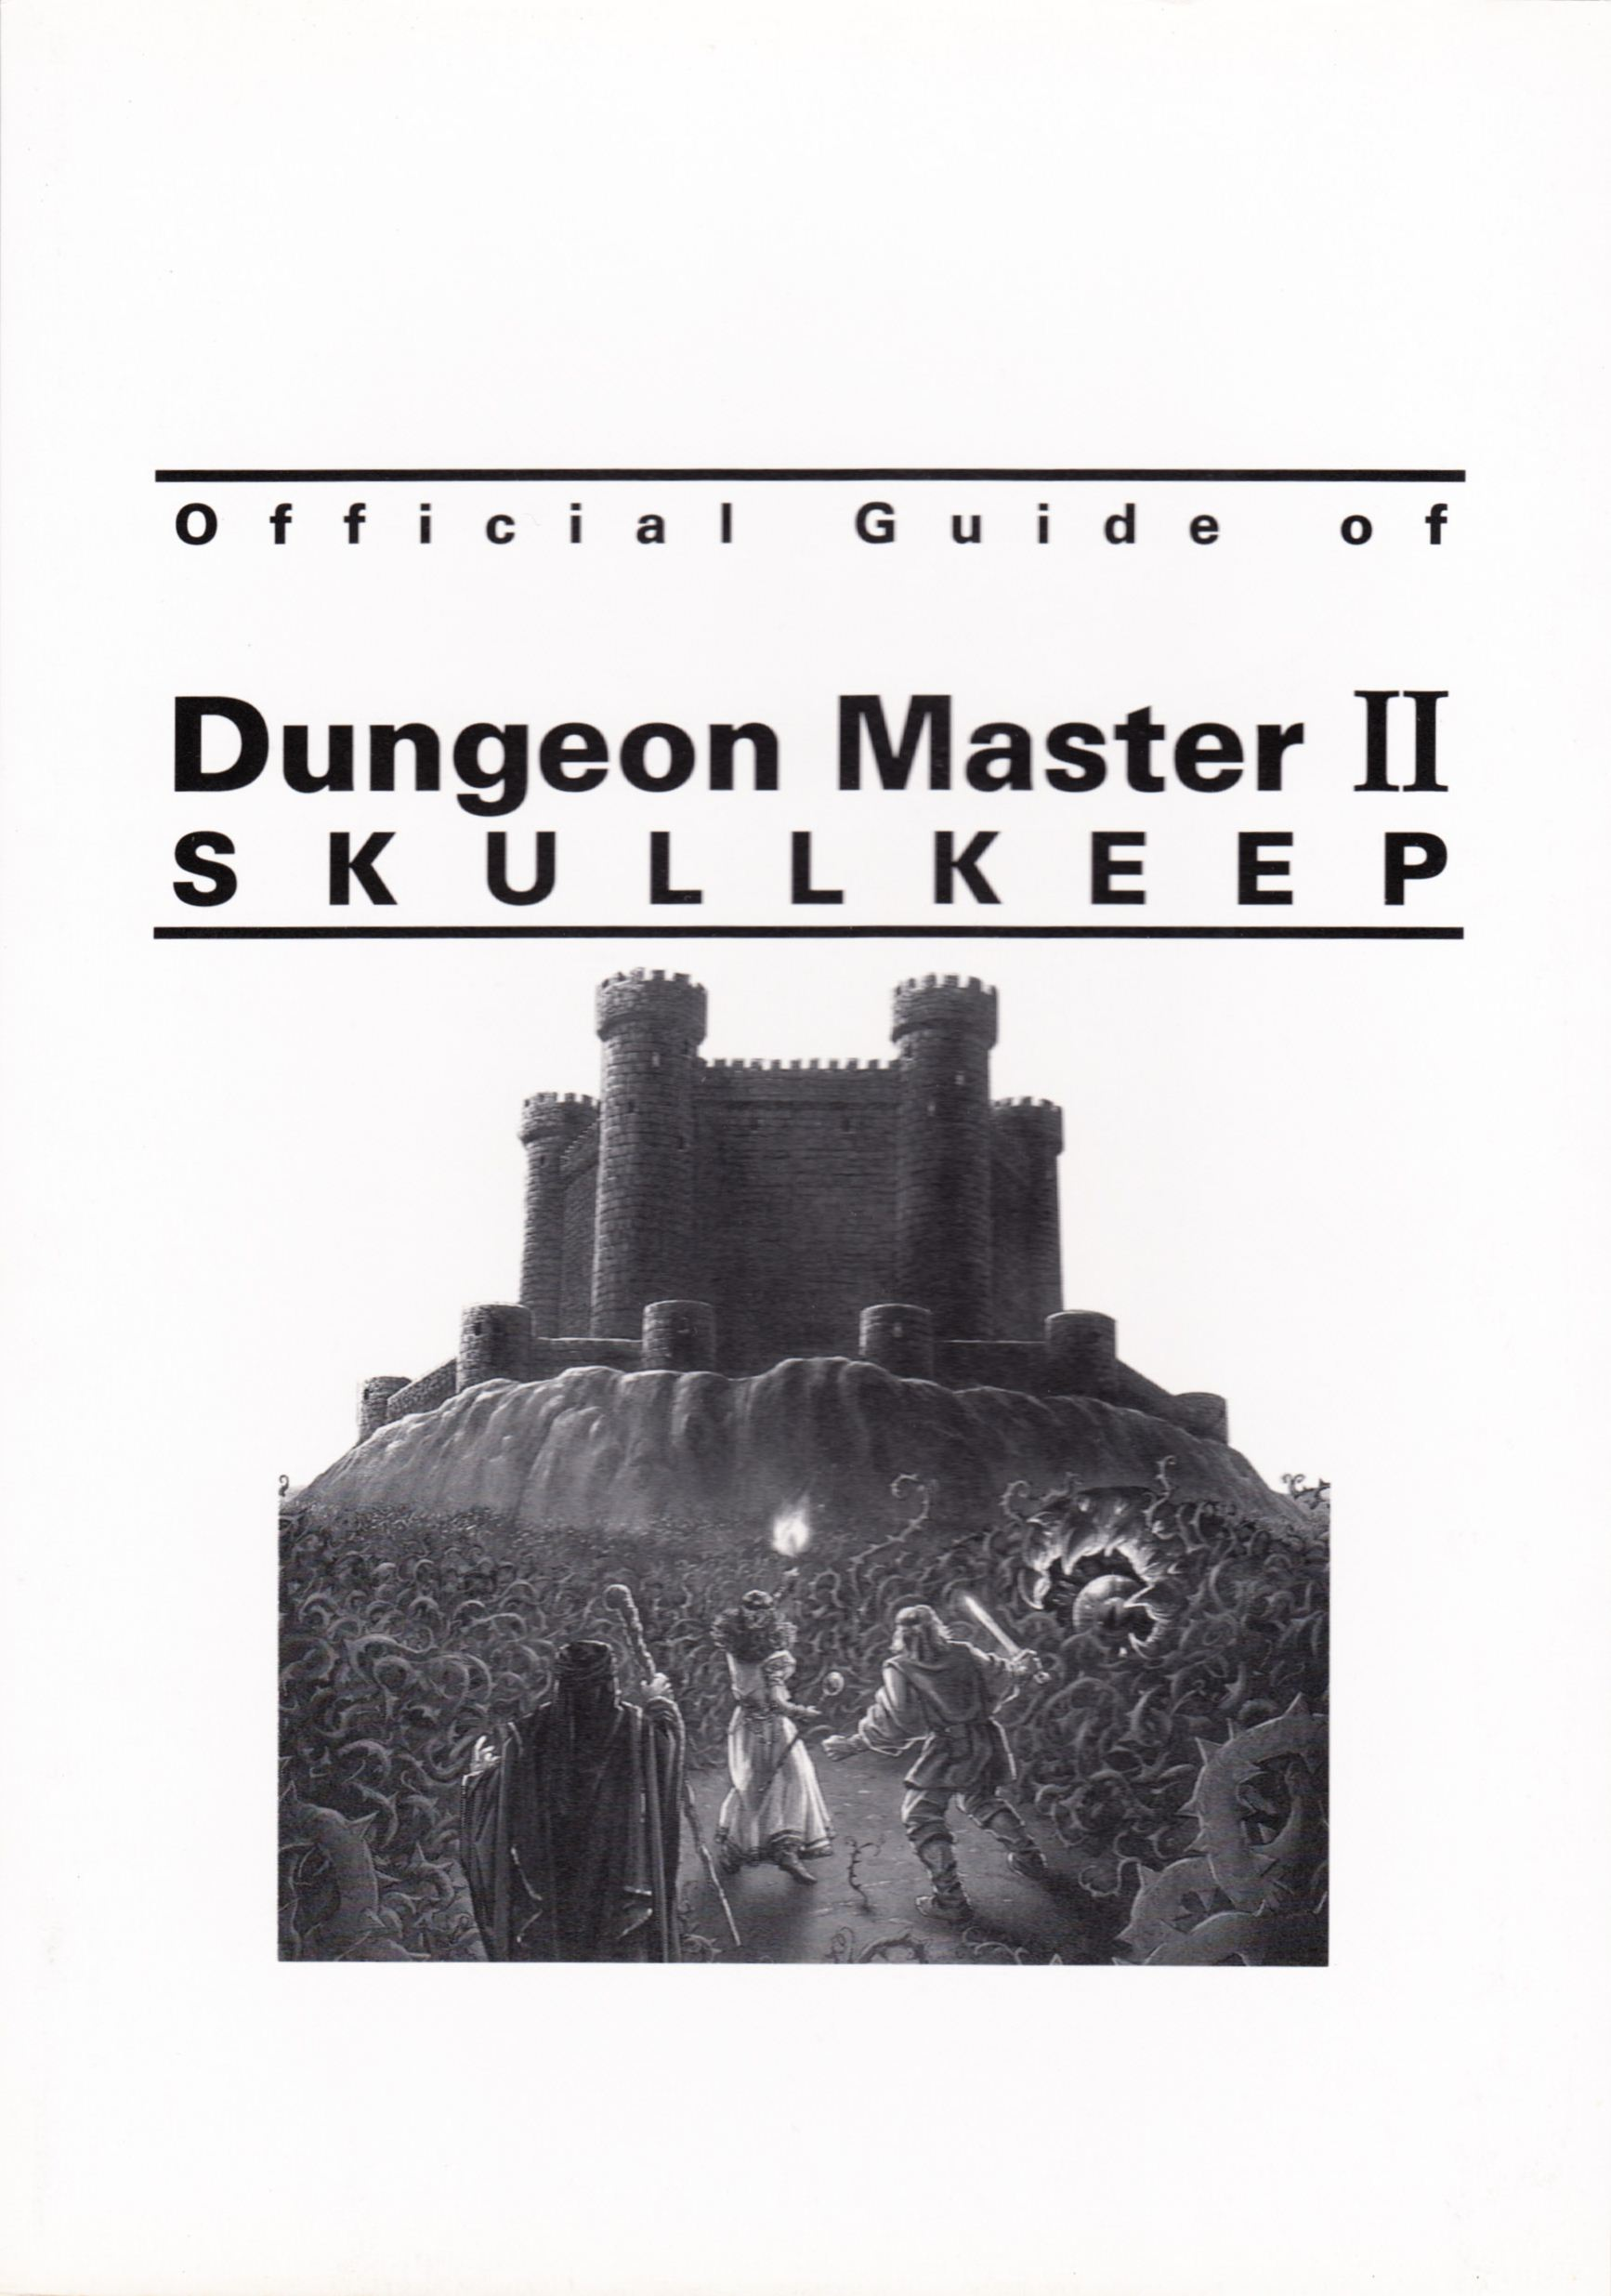 Hint Book - Official Guide Of Dungeon Master II Skullkeep - JP - Cover - Front - Scan